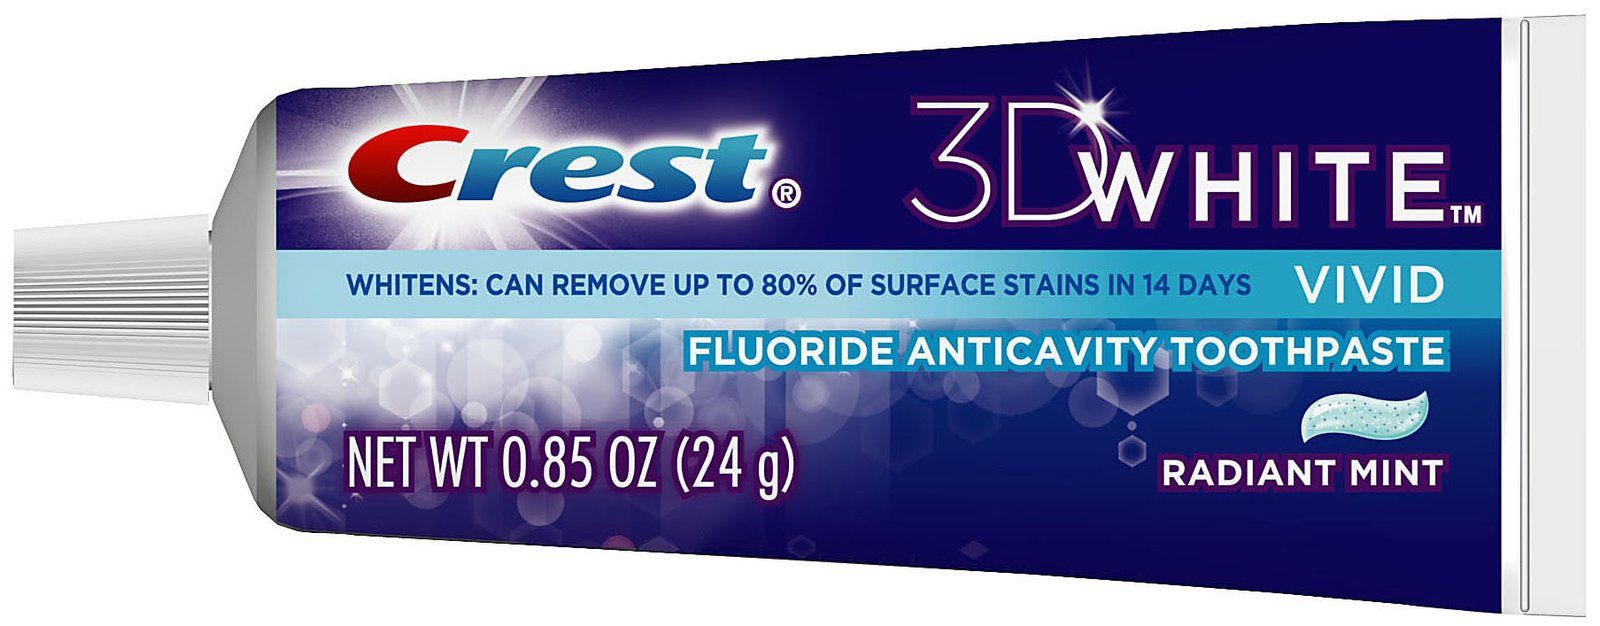 Crest Toothpaste 3d White Photocredit Crest 3D